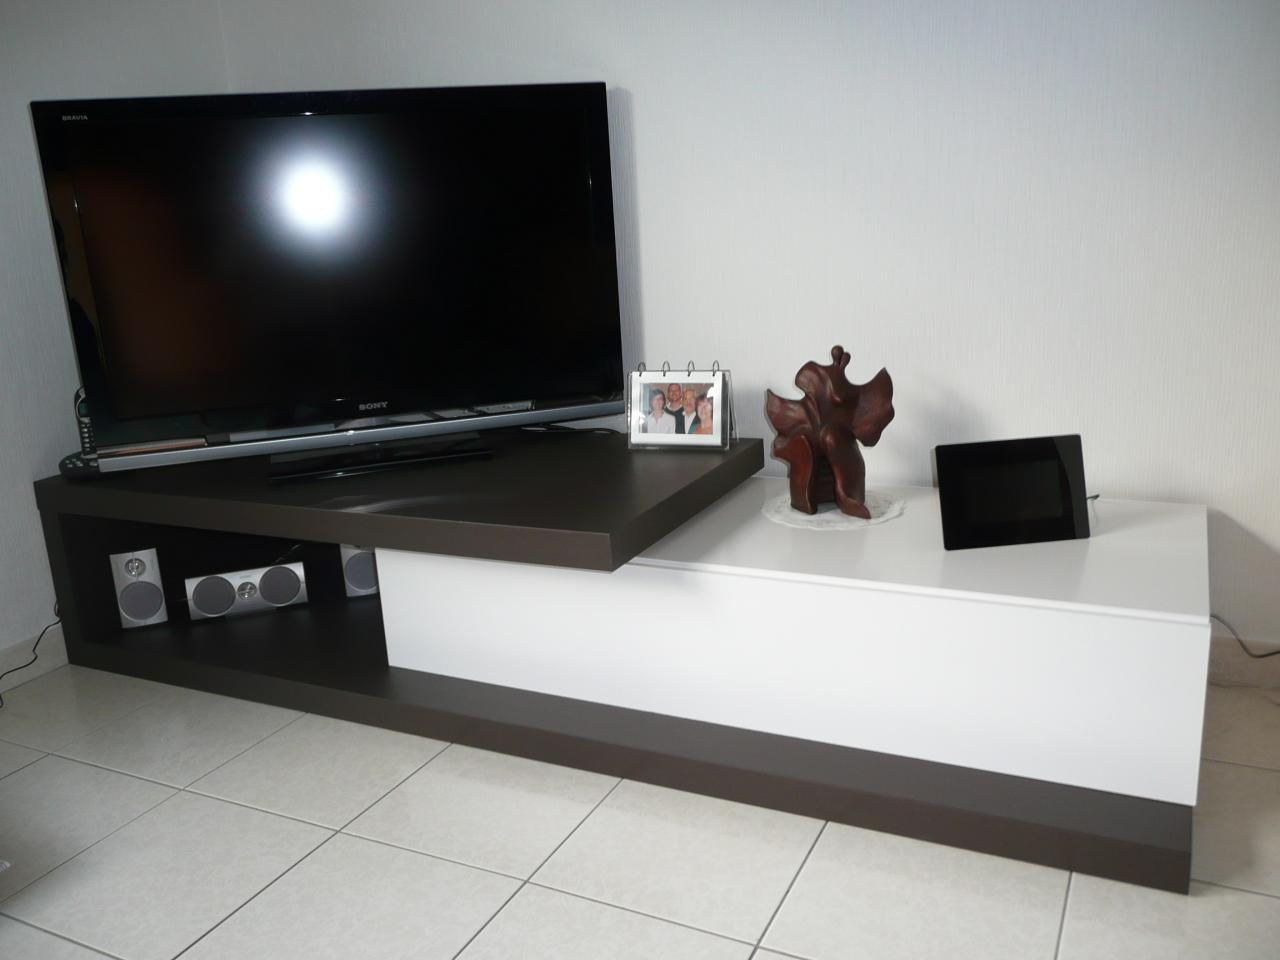 Table Tv Coin - Meuble Tv De Coin Meuble Tv 140 Newbalancesoldes[mjhdah]https://secure.img.wfrcdn.com/lf/maxsquare/hash/244/29538636/1/Noble-TV-Stand-1038.jpg